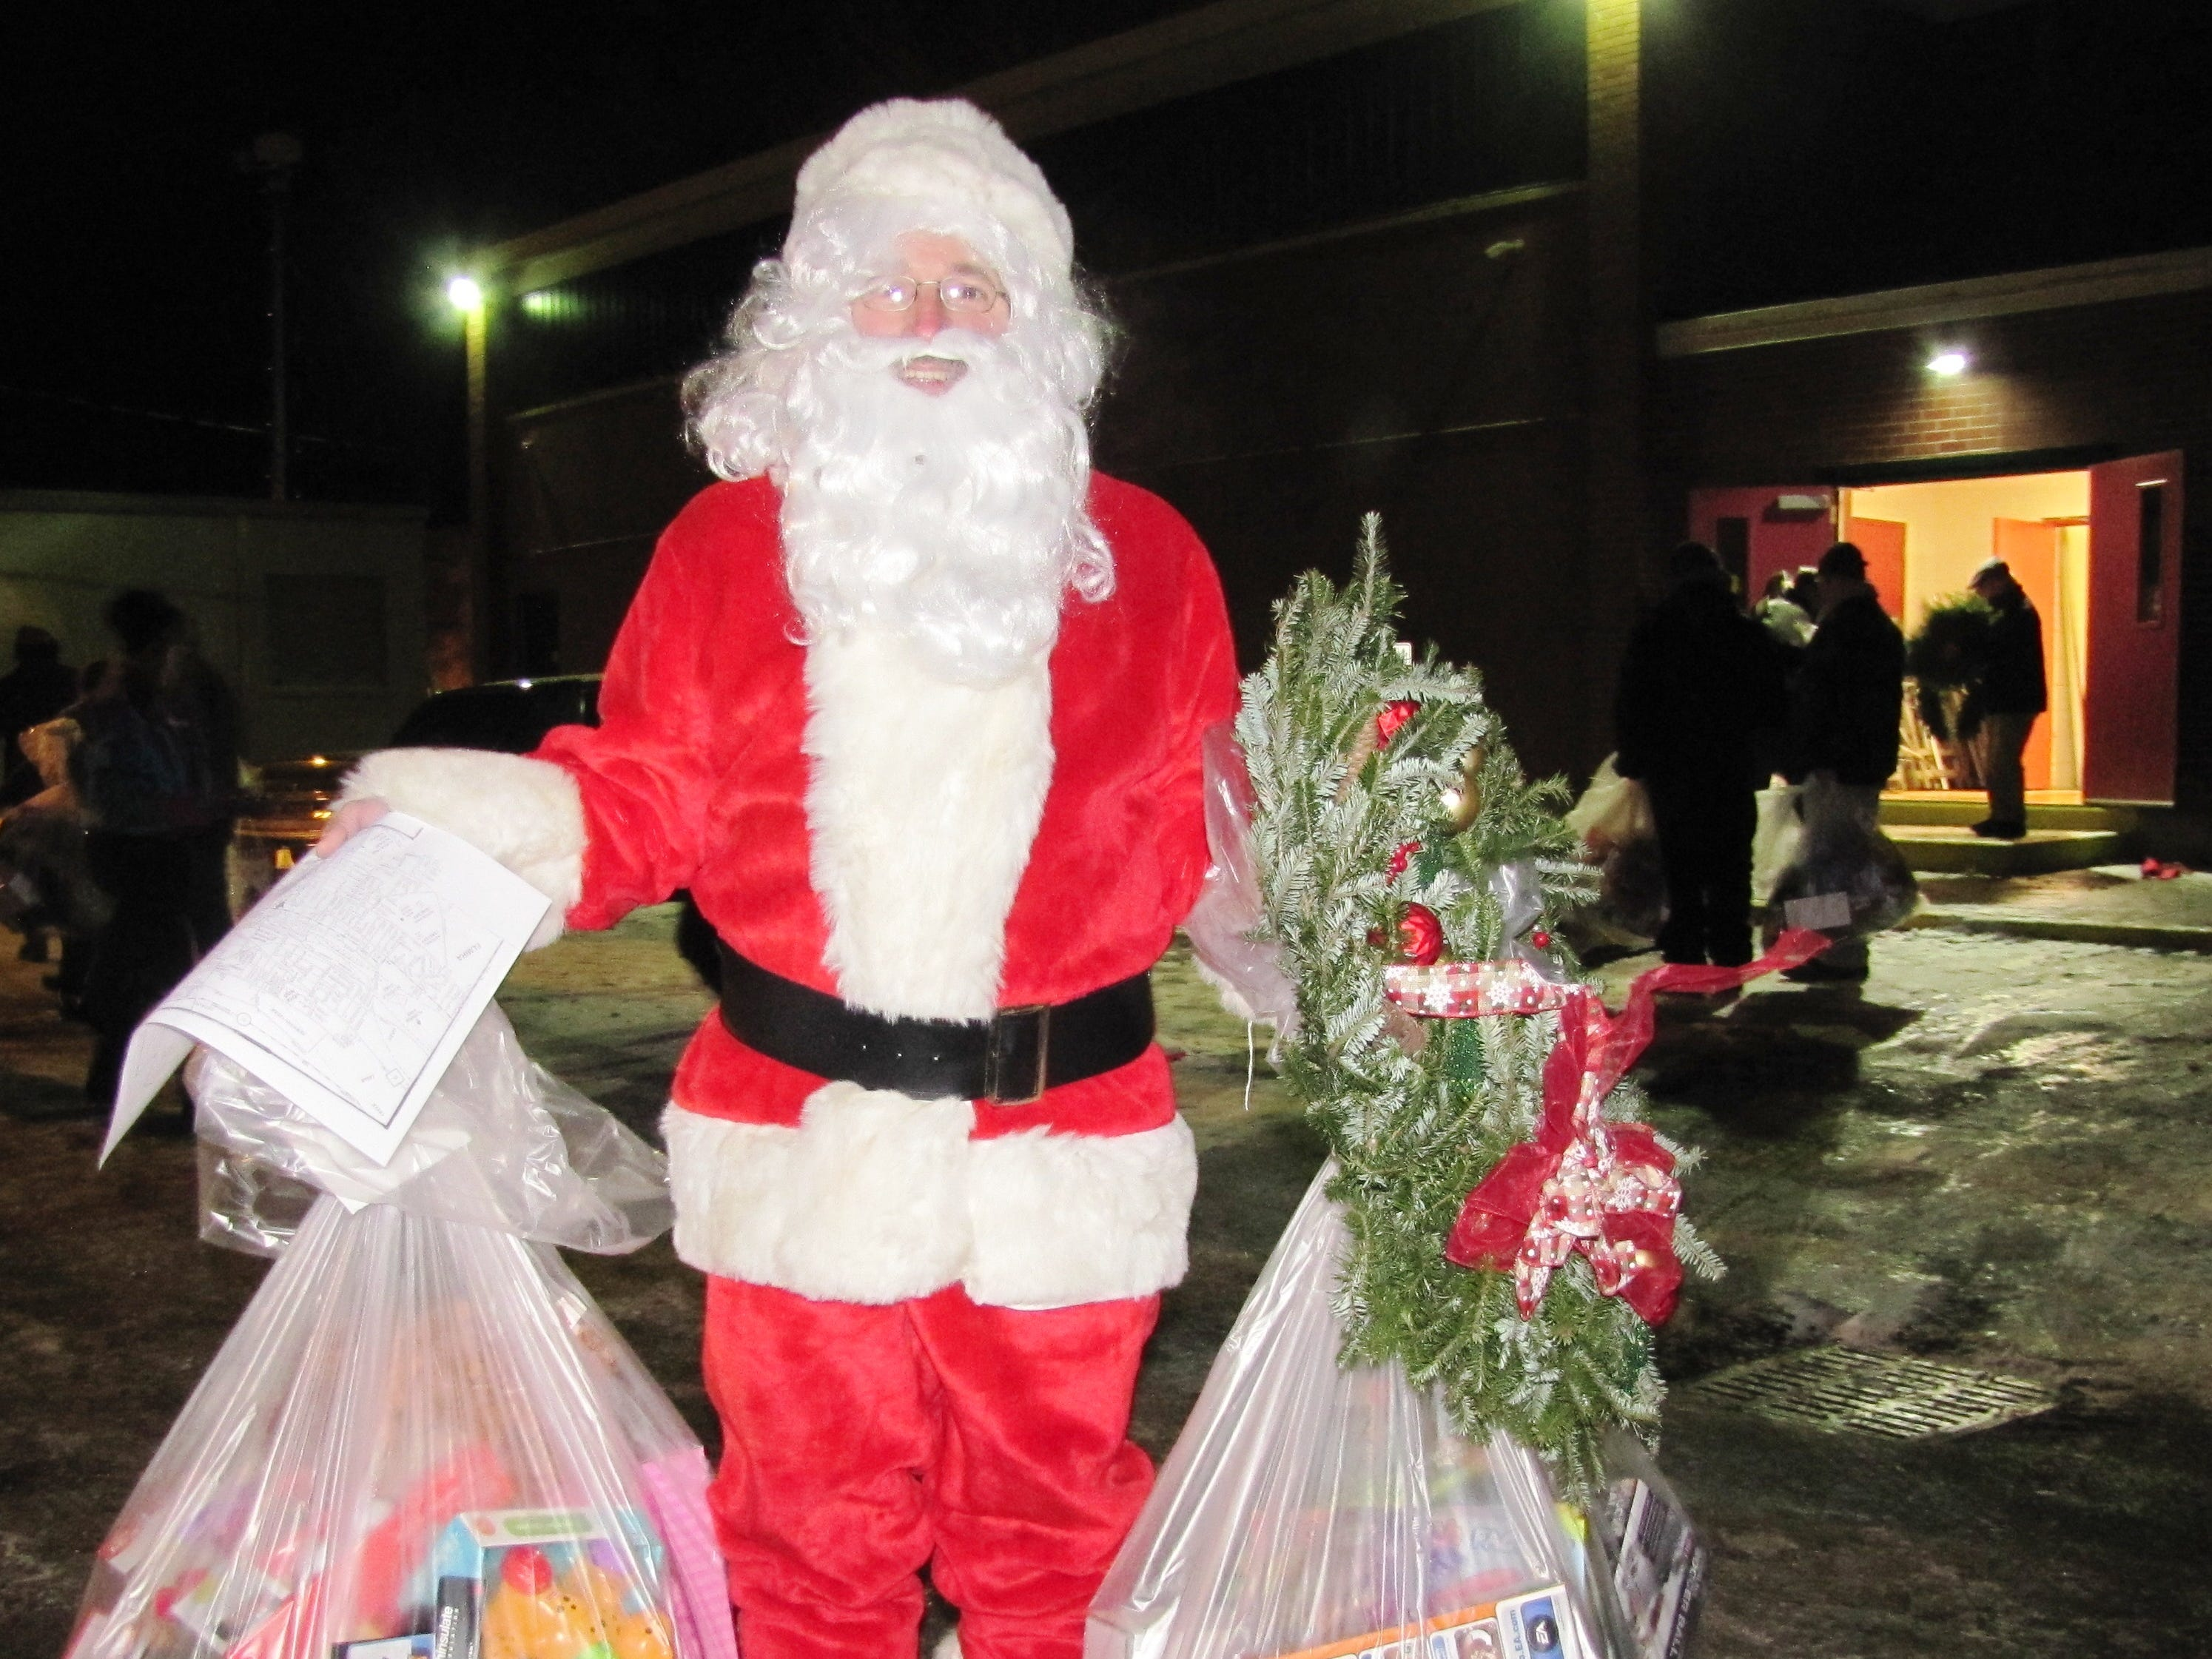 Lynn Thomas, of Painted Post, a native of Elmira, delivered Arctic League gifts Christmas morning in a full Santa suit.